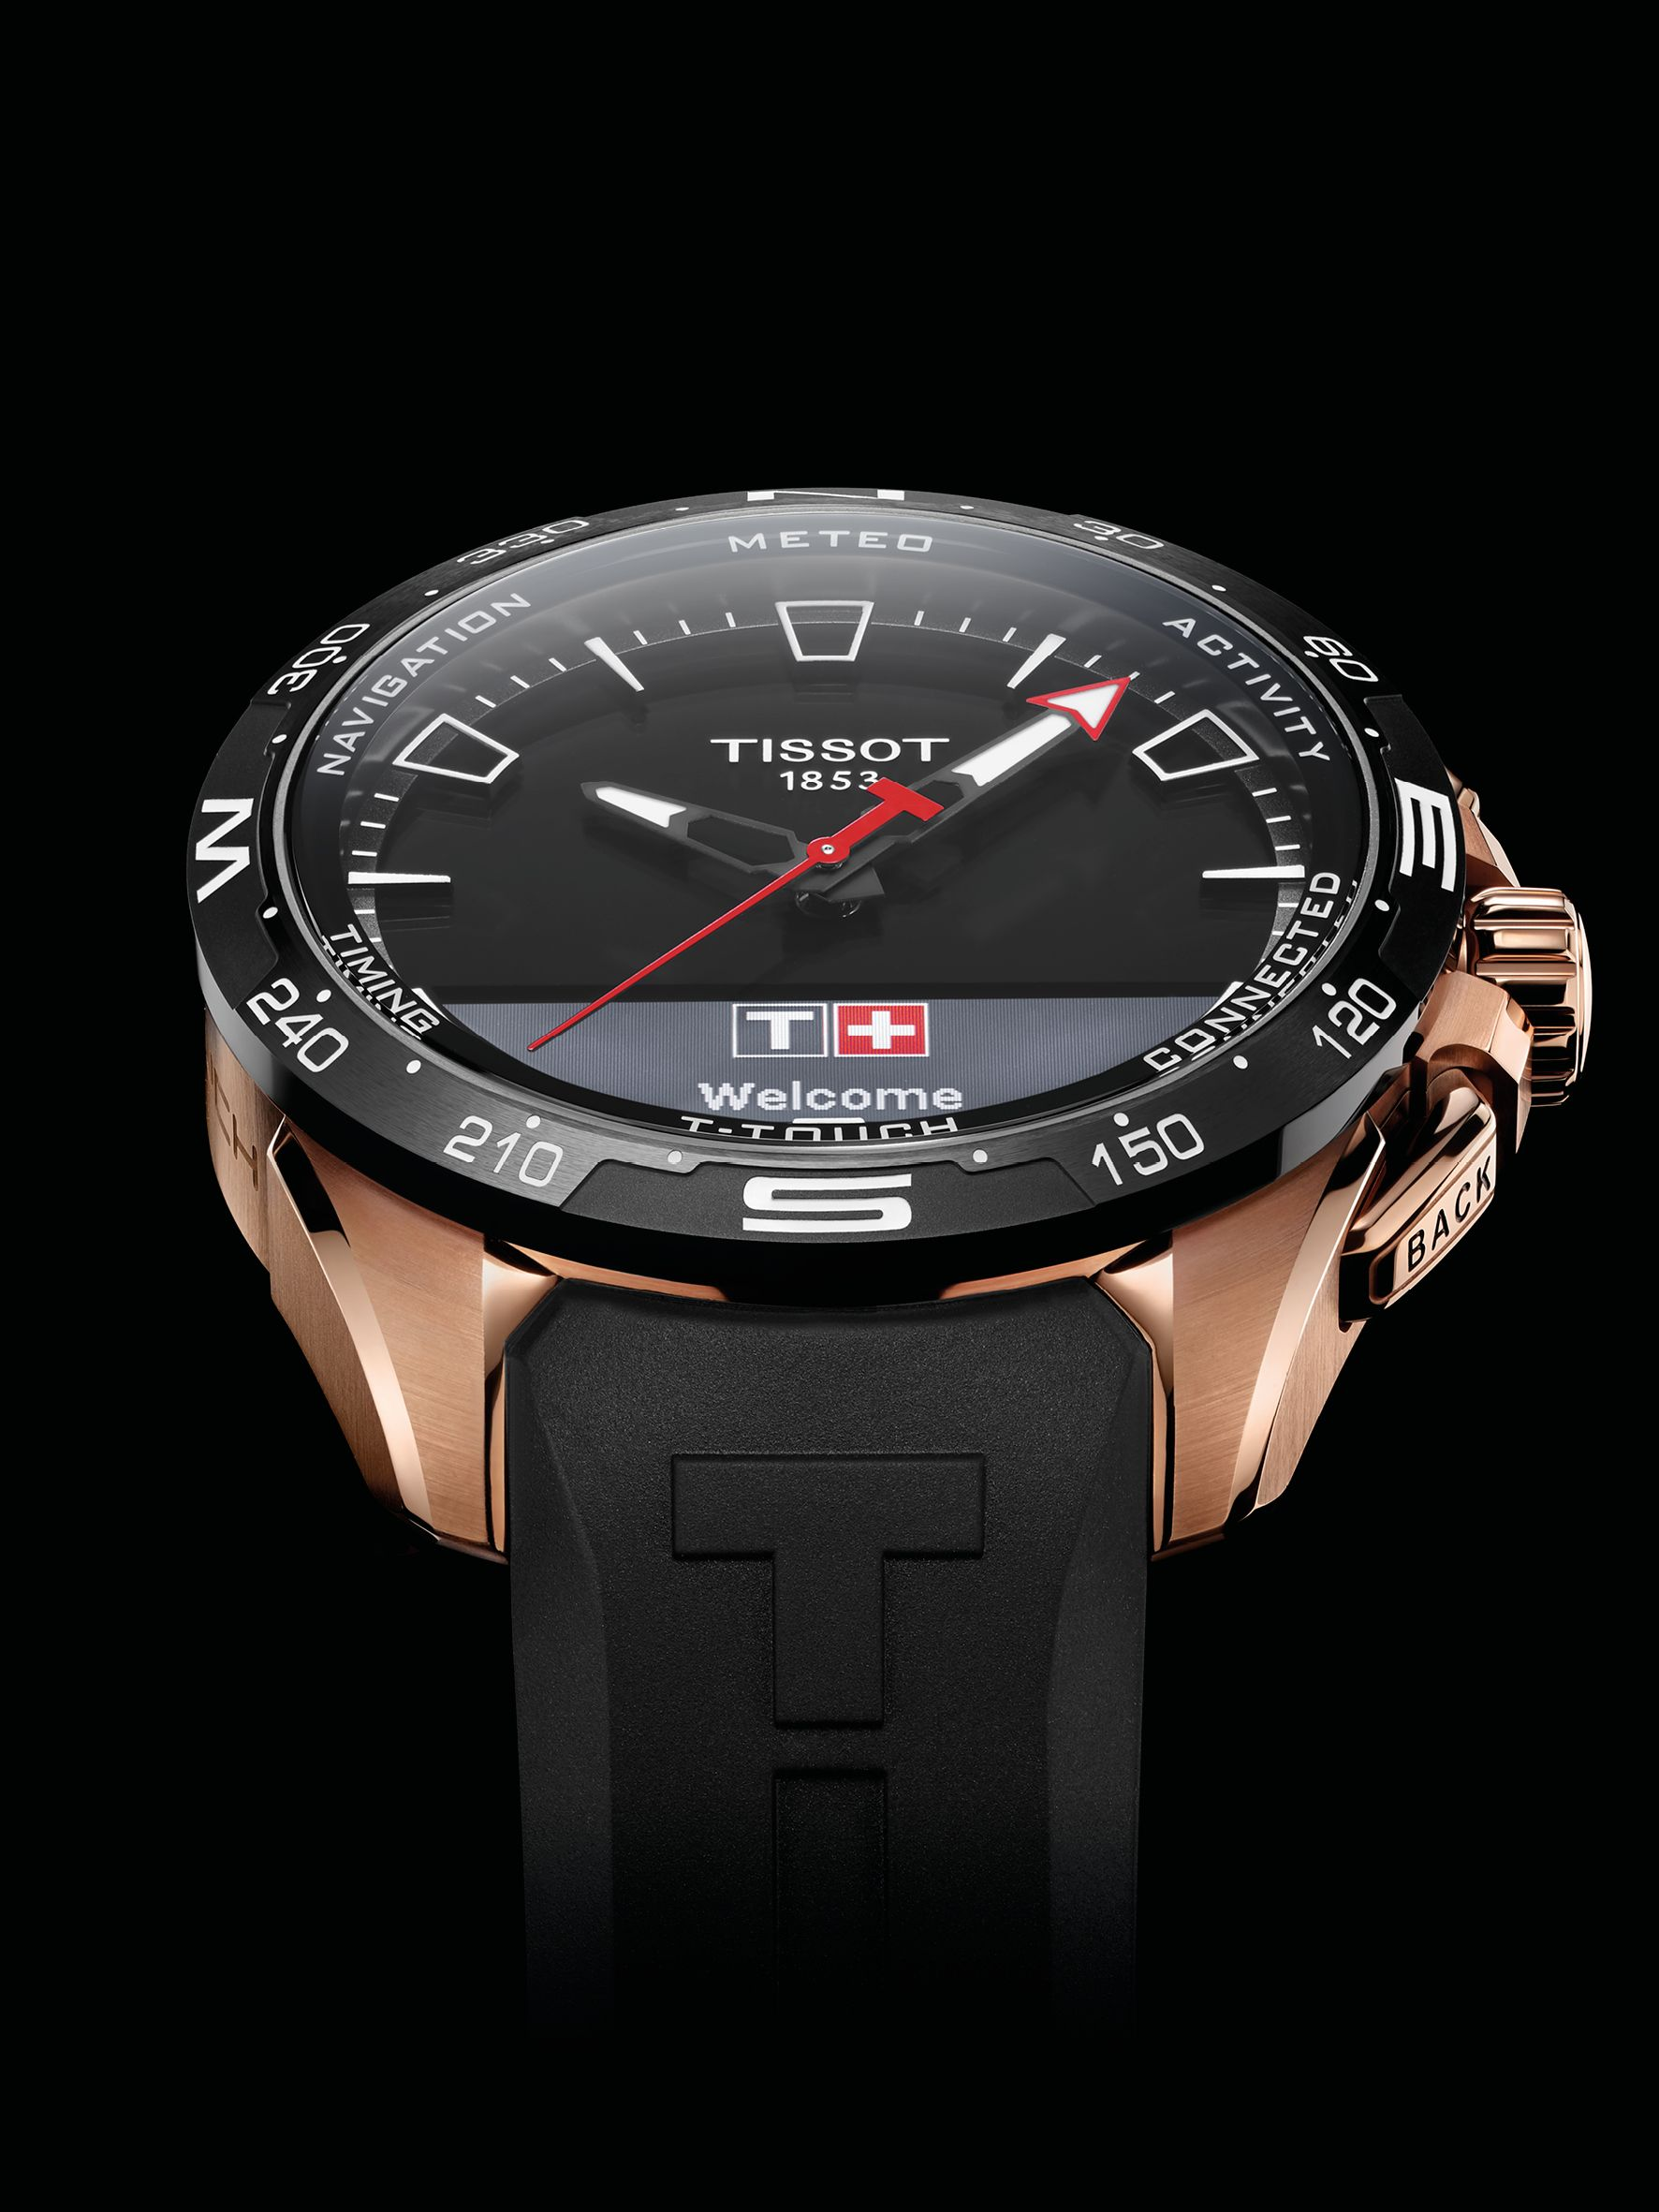 Why Tissot Is Gambling on a £30 Million Smartwatch